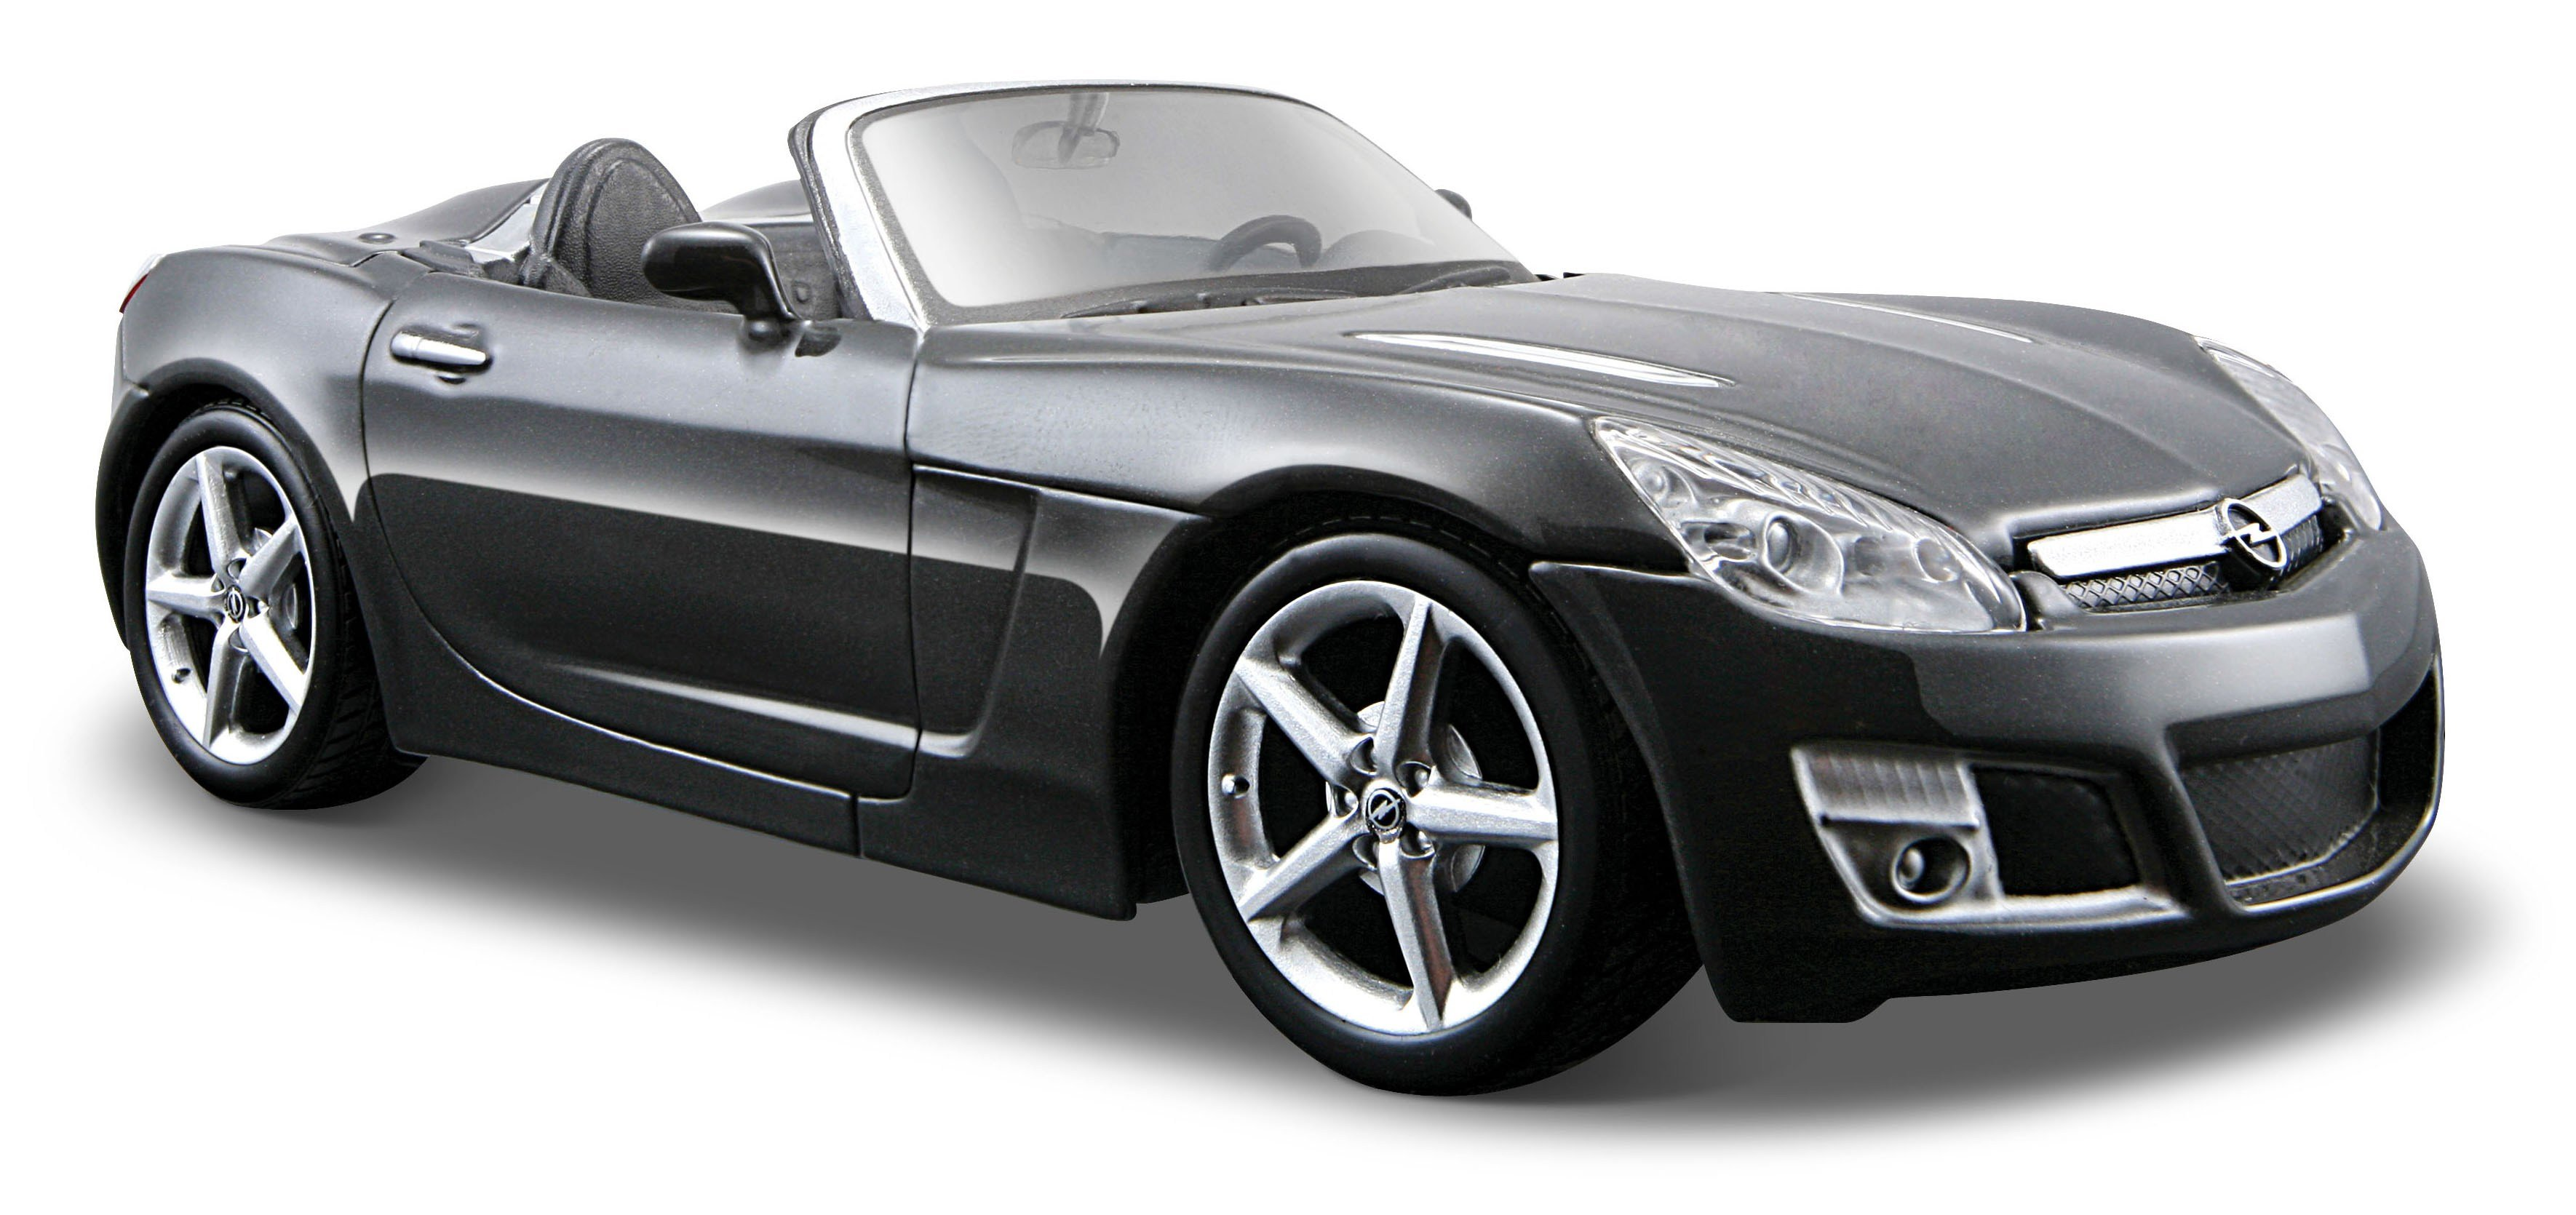 New 2008 Opel Gt Model Cars Hobbydb On This Month